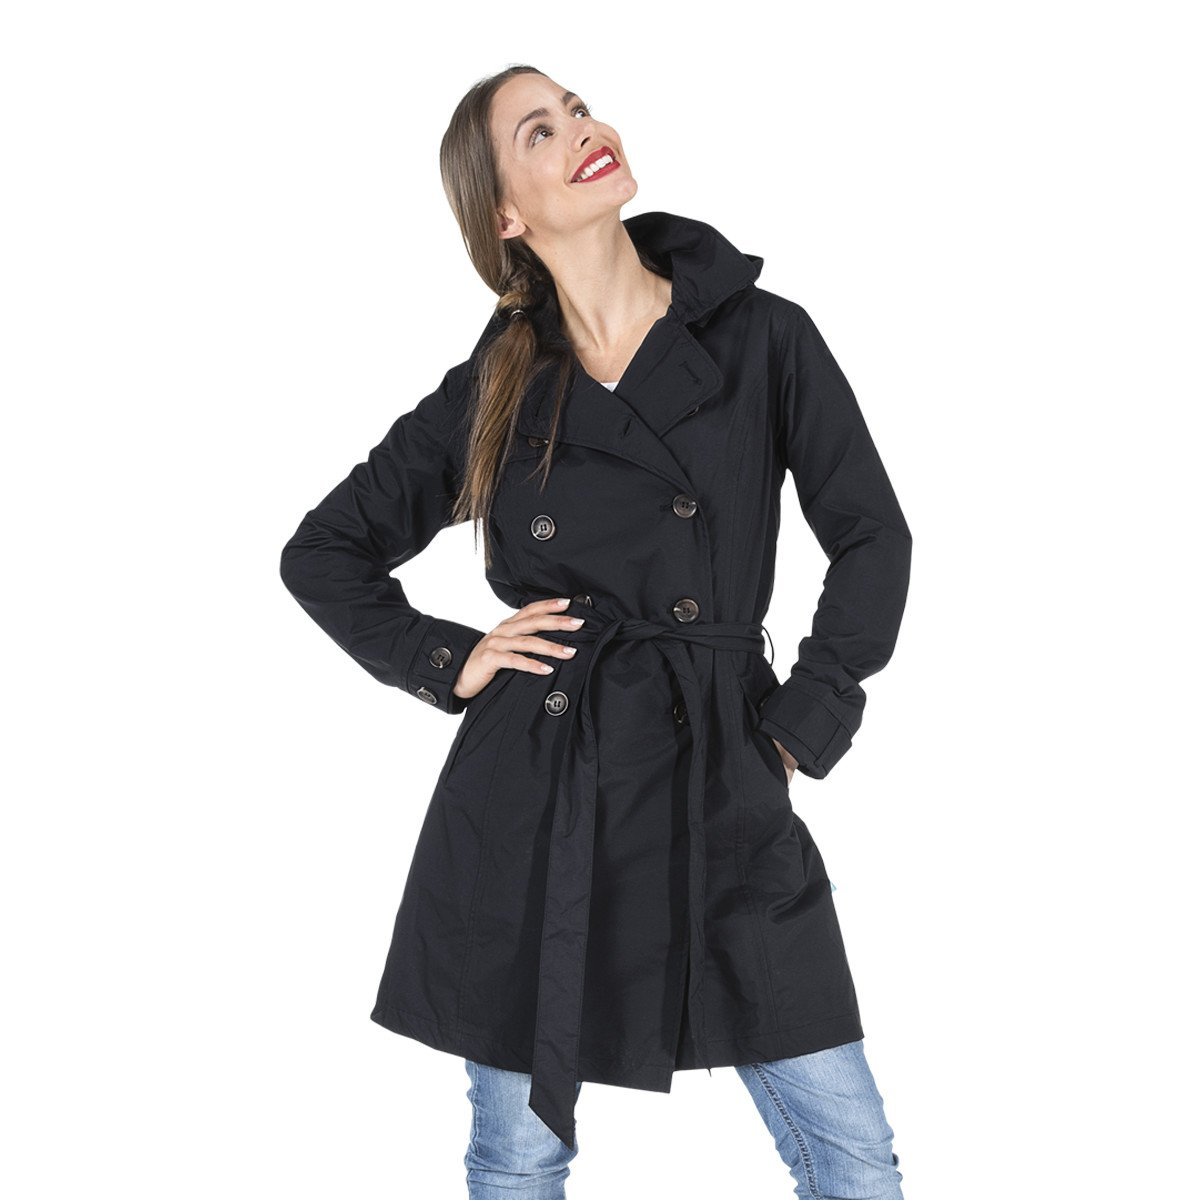 Happy Rainy Days Women's Classic Trench Coat With Removable Hood, Black, Large